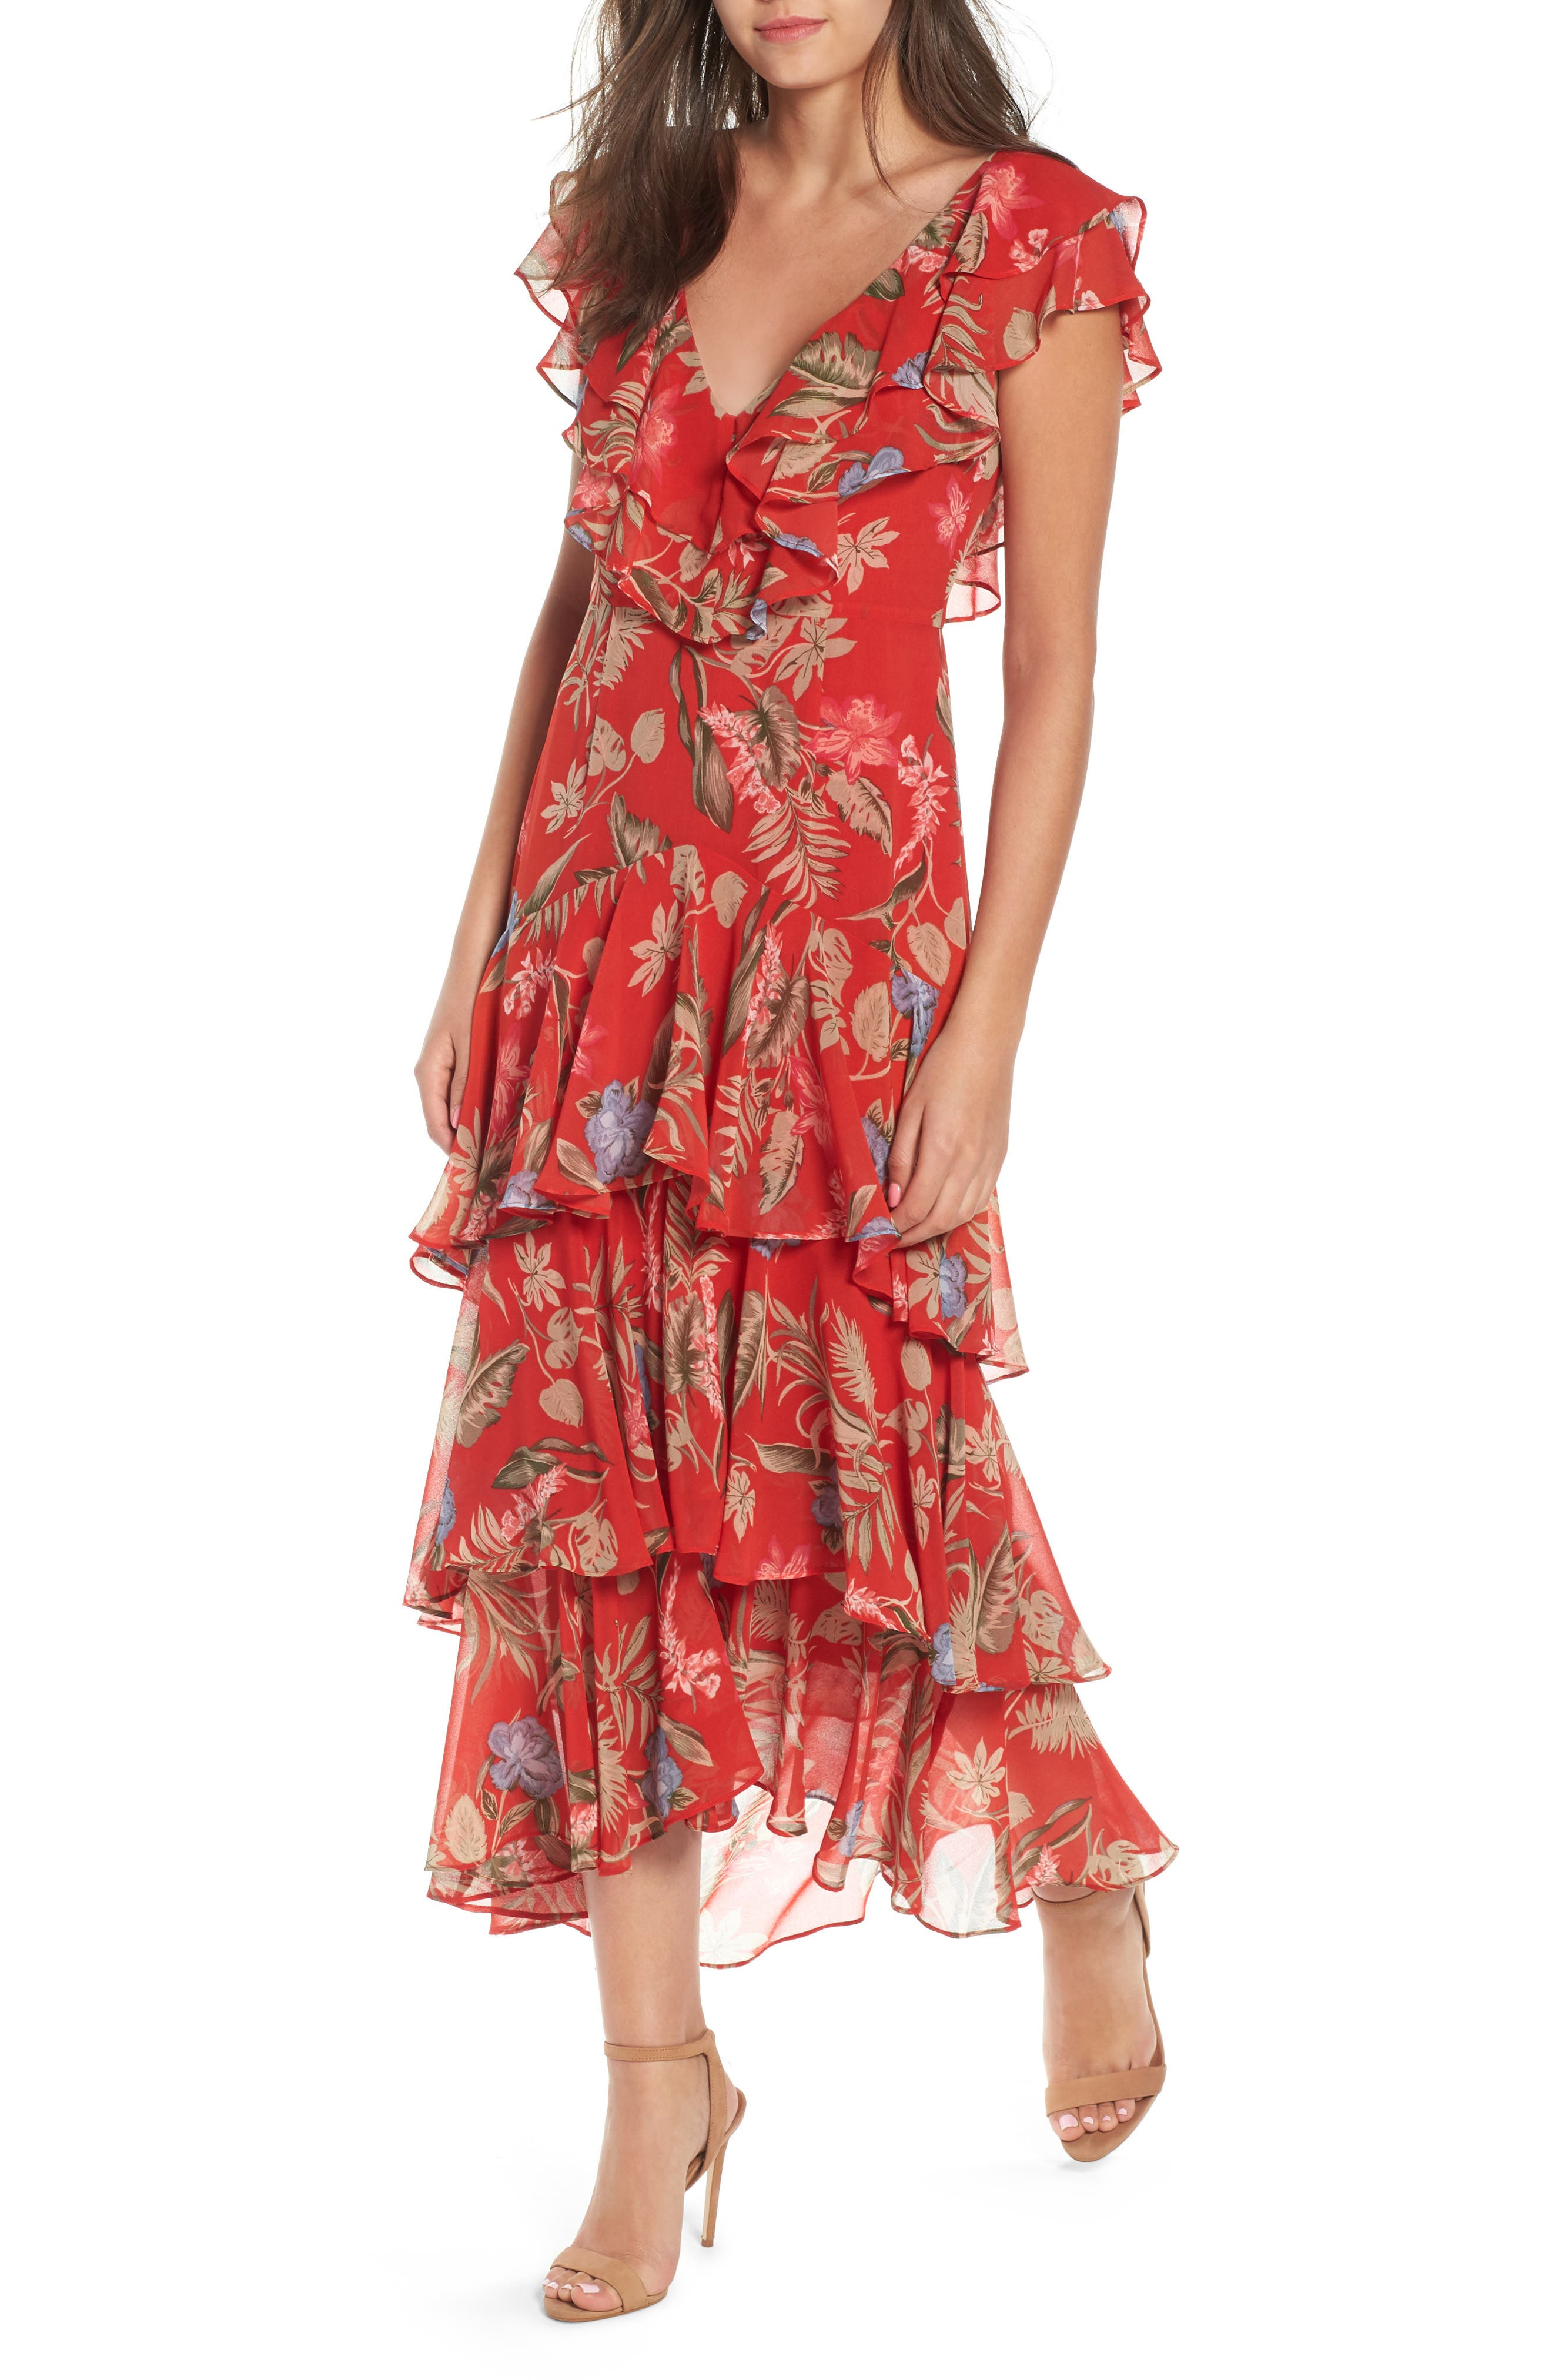 Chelsea Tiered Ruffle Maxi Dress,                             Main thumbnail 1, color,                             600